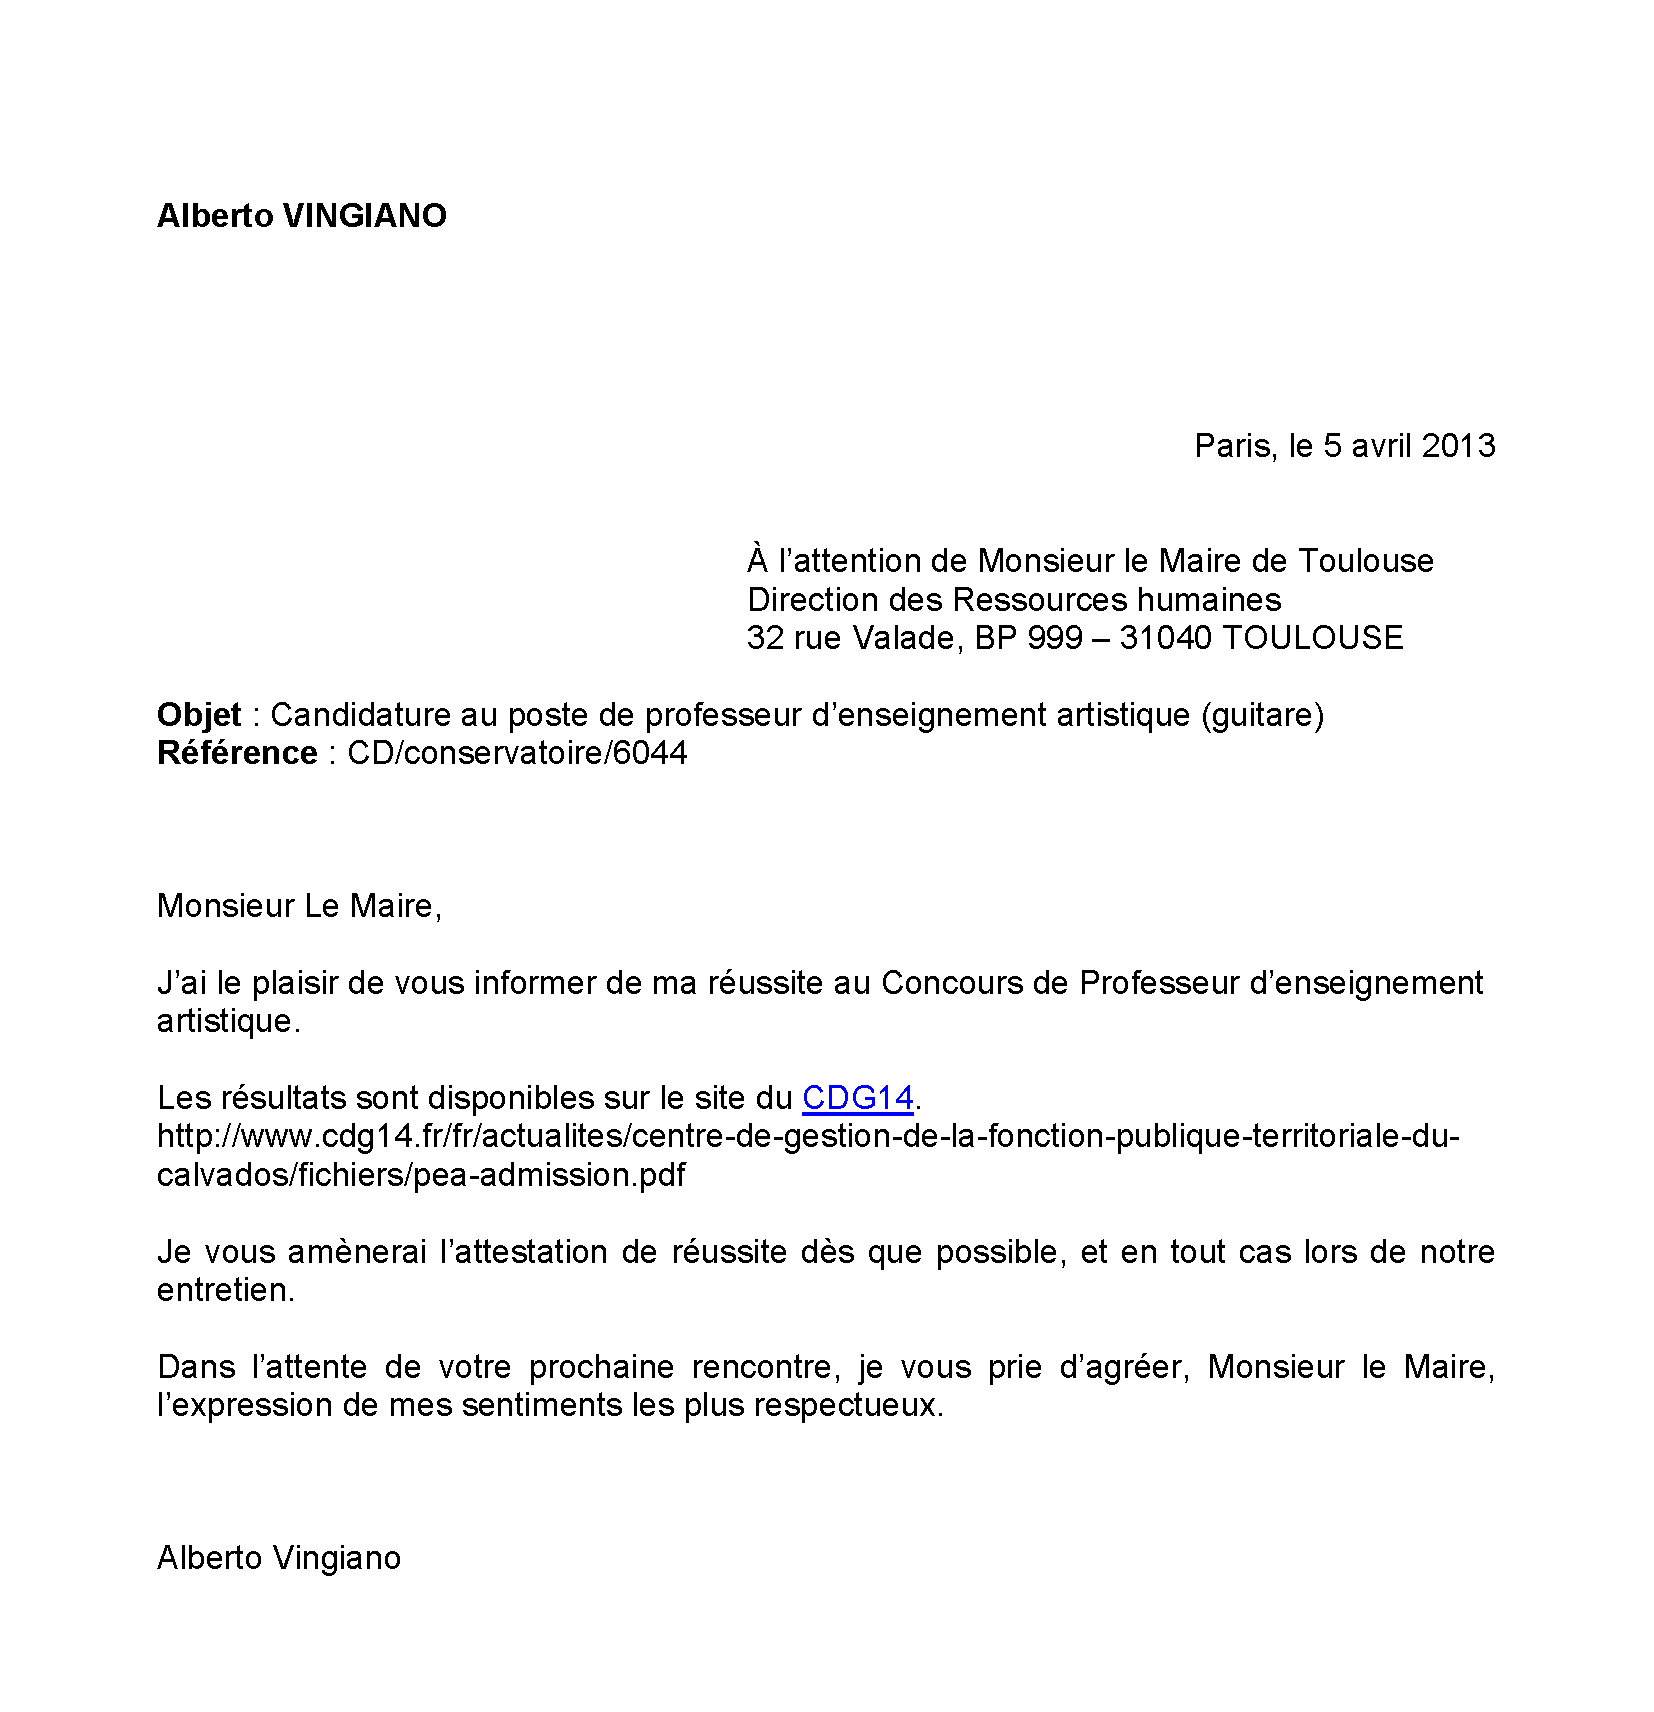 Lettre De Motivation Licence Pro Projet Professionnel: Lettre De Motivation à L'attention De La Direction Des